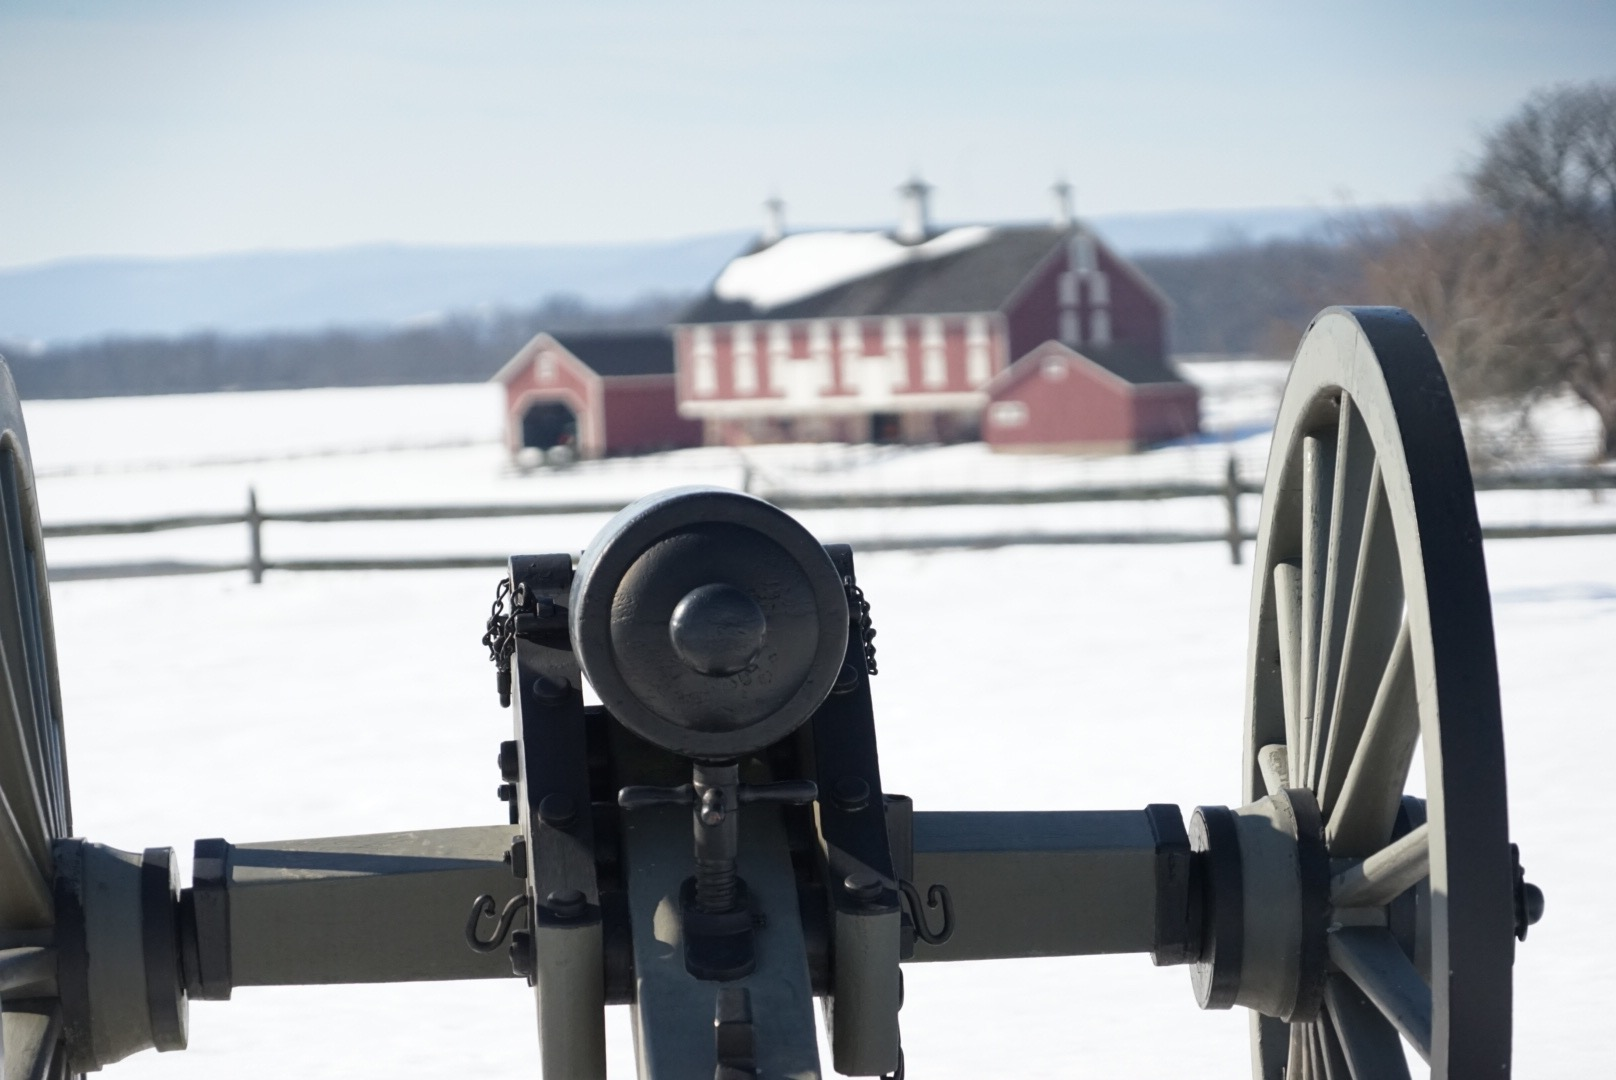 Cannon at the Gettysburg National Historic Battlefield